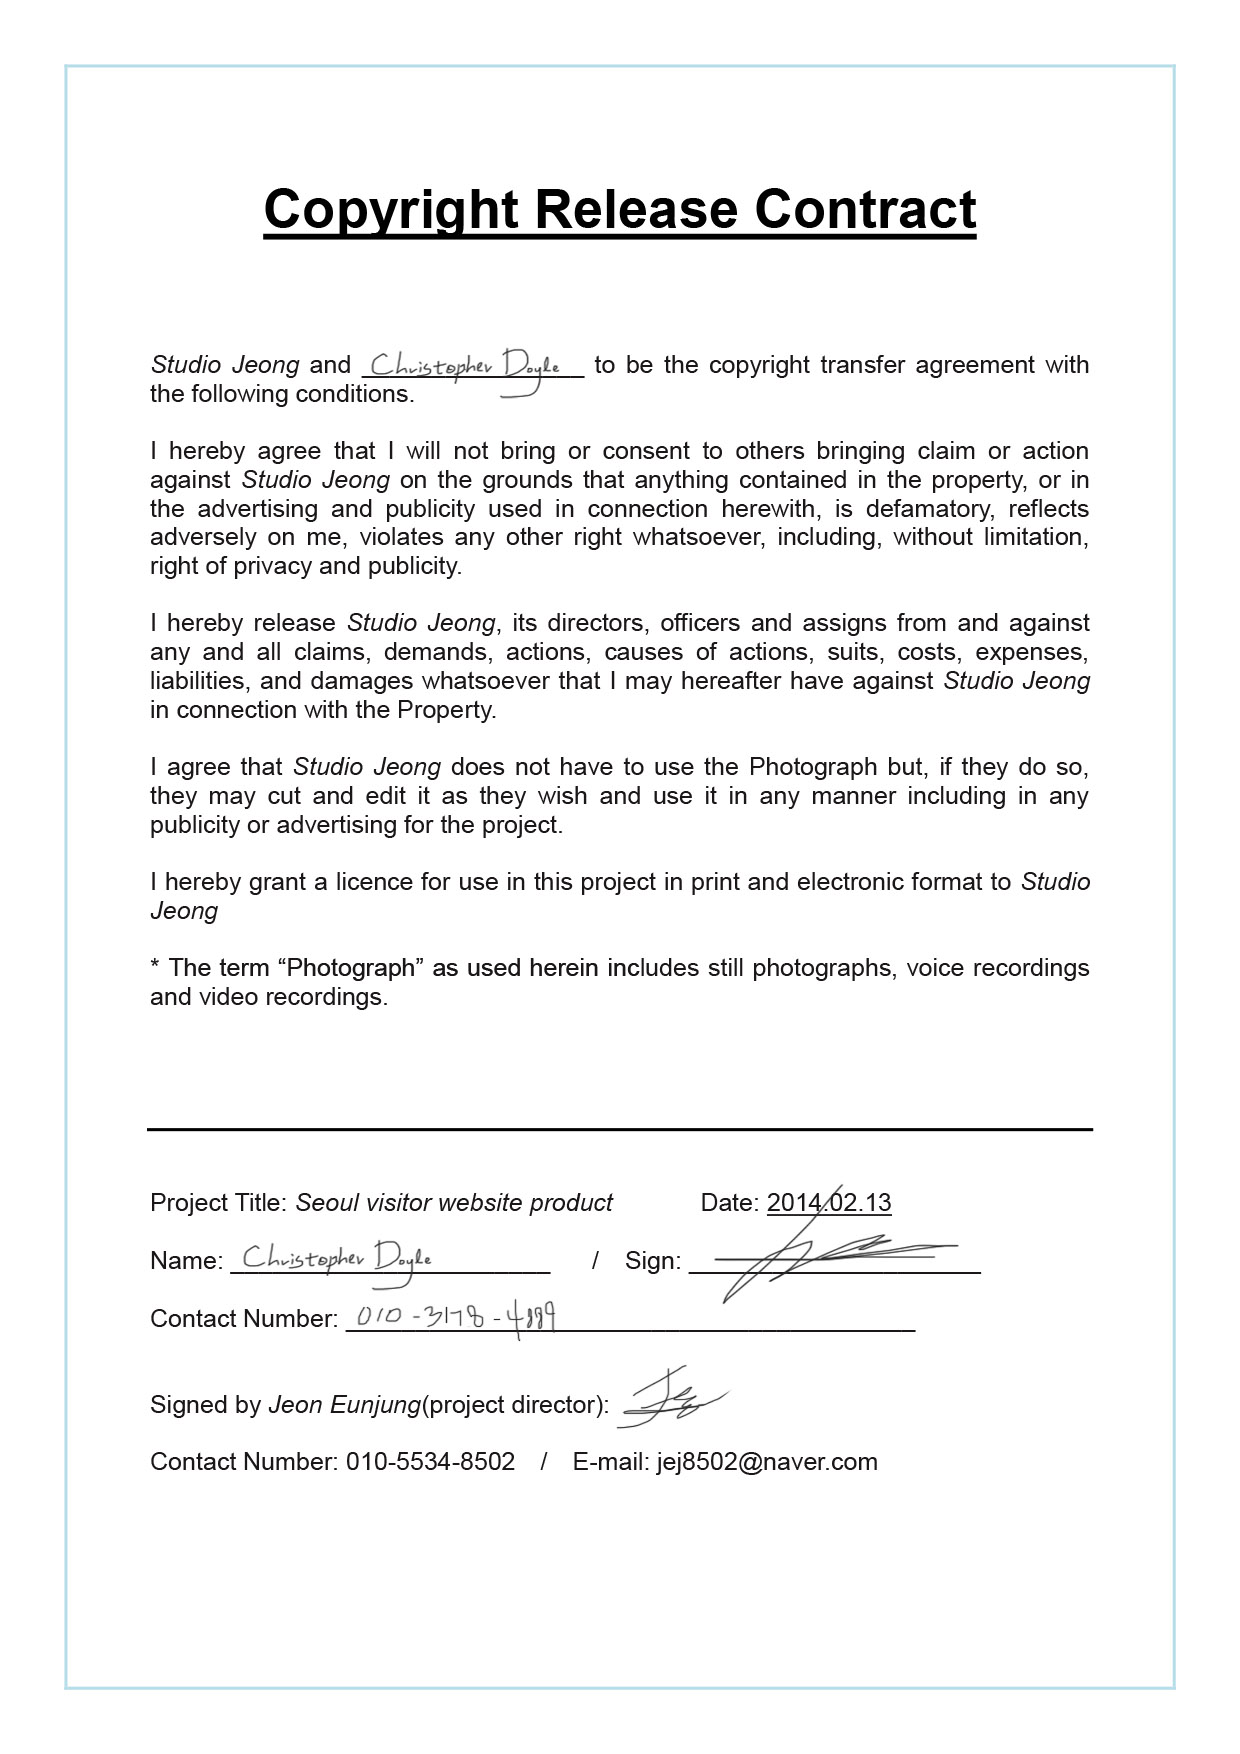 Copyright Release Contract – Photo Copyright Release Forms